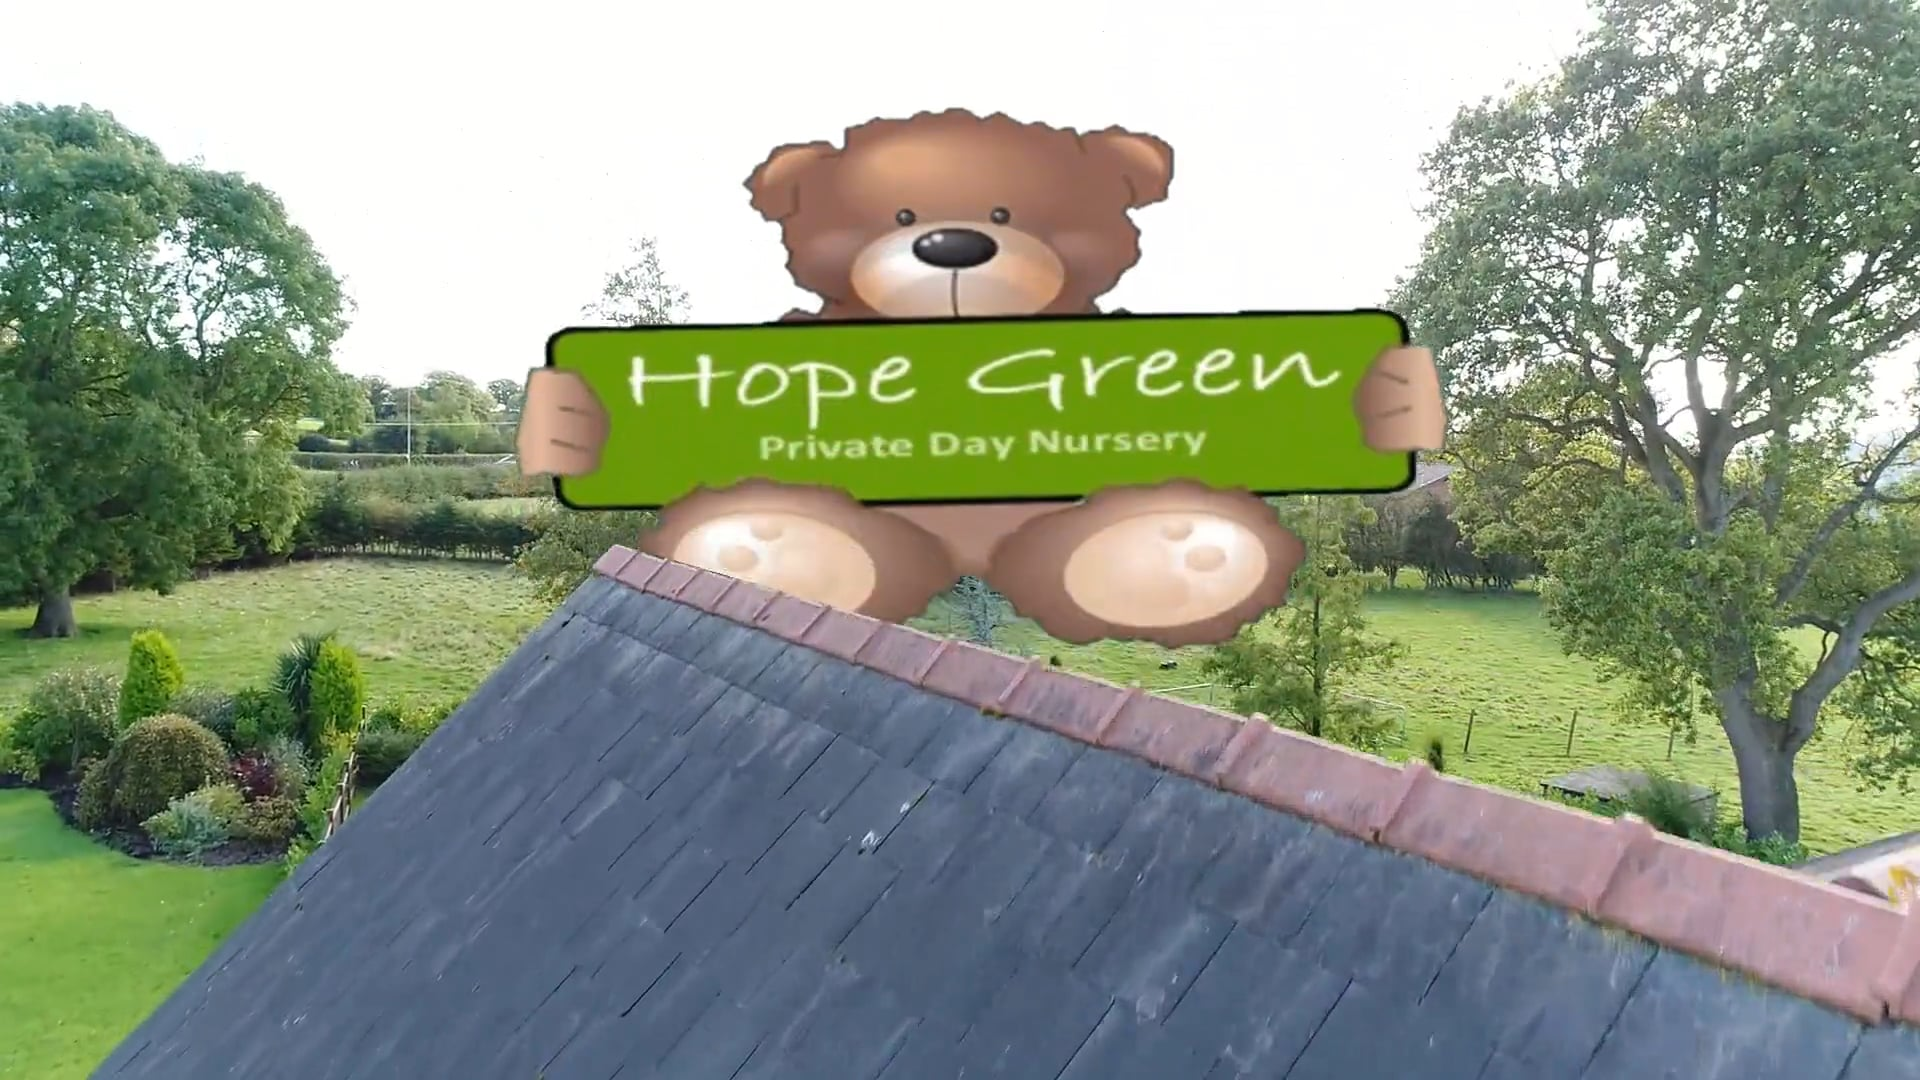 Hope Green Private Day Nursery